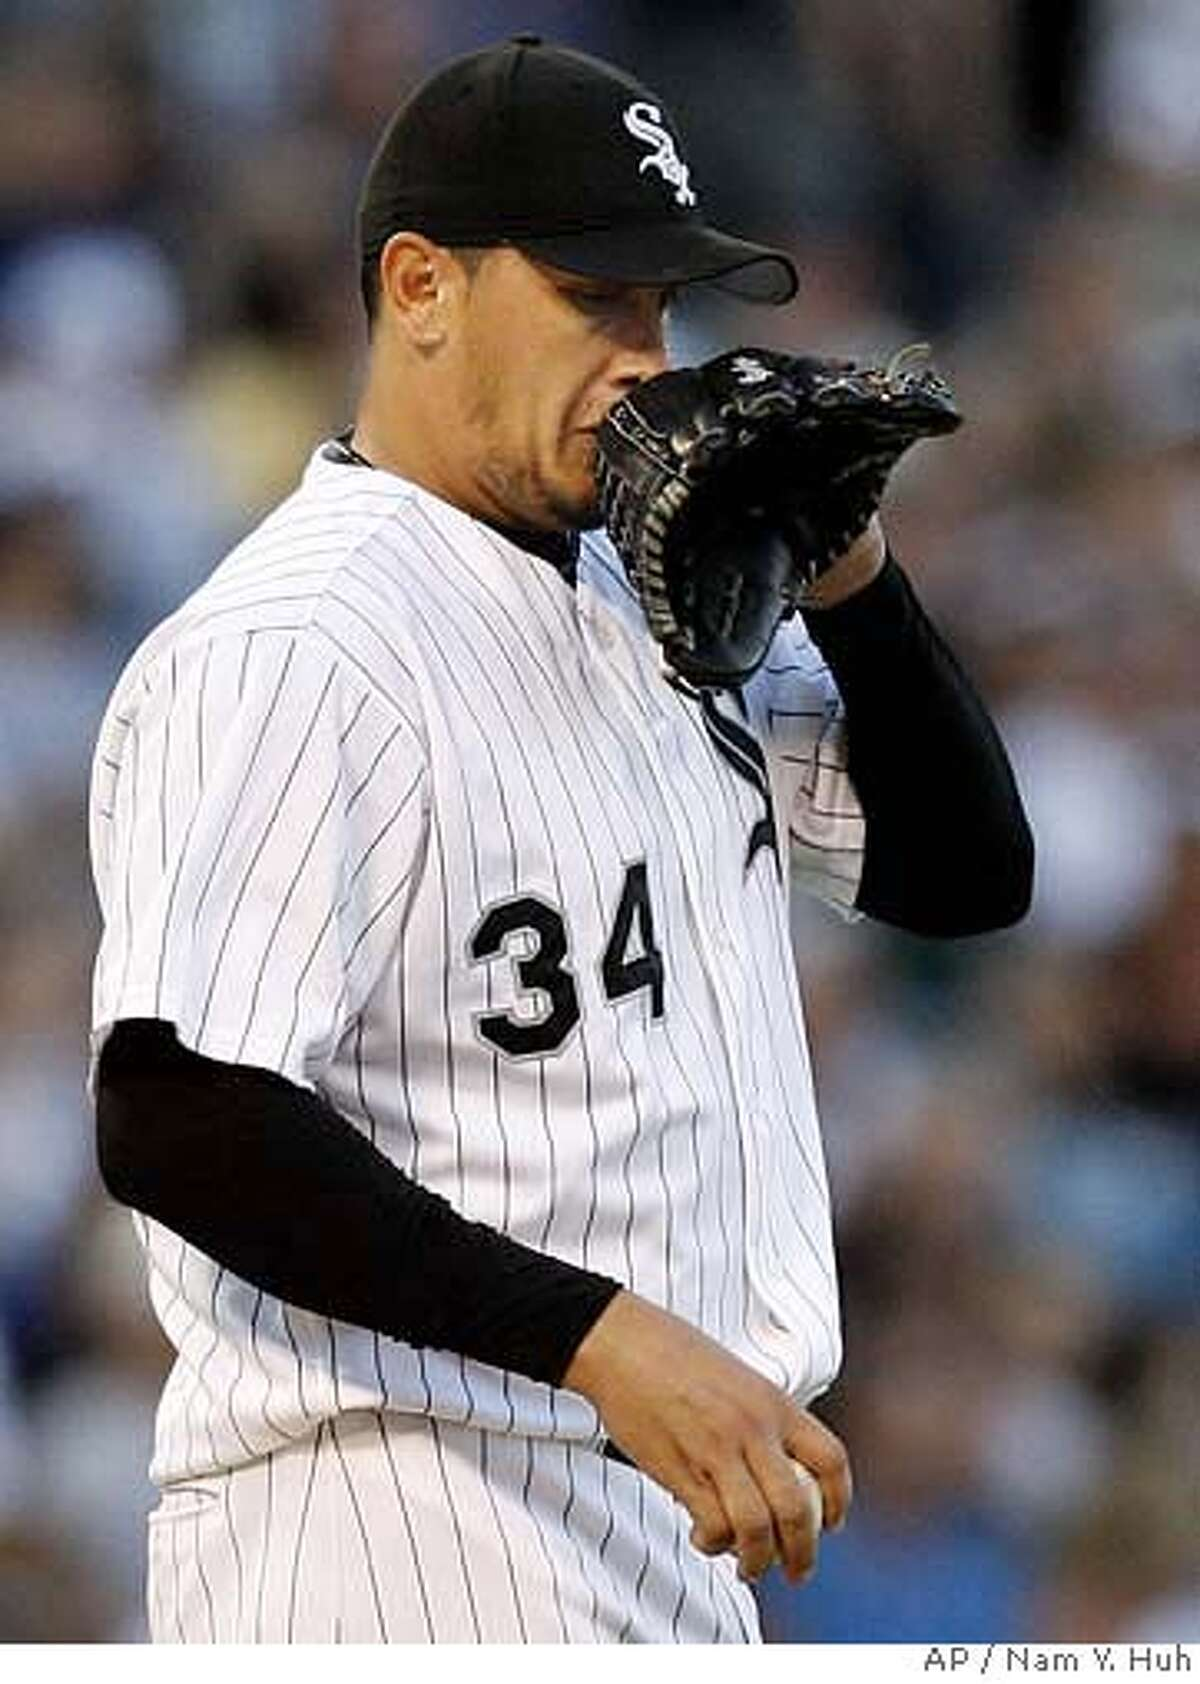 Chicago White Sox starting pitcher Freddy Garcia wipes his face after New York Yankees' Bobby Abreu's single during the first inning of a baseball game at U.S. Cellular Field, Tuesday, Aug. 8, 2006 in Chicago.(AP Photo/Nam Y. Huh)